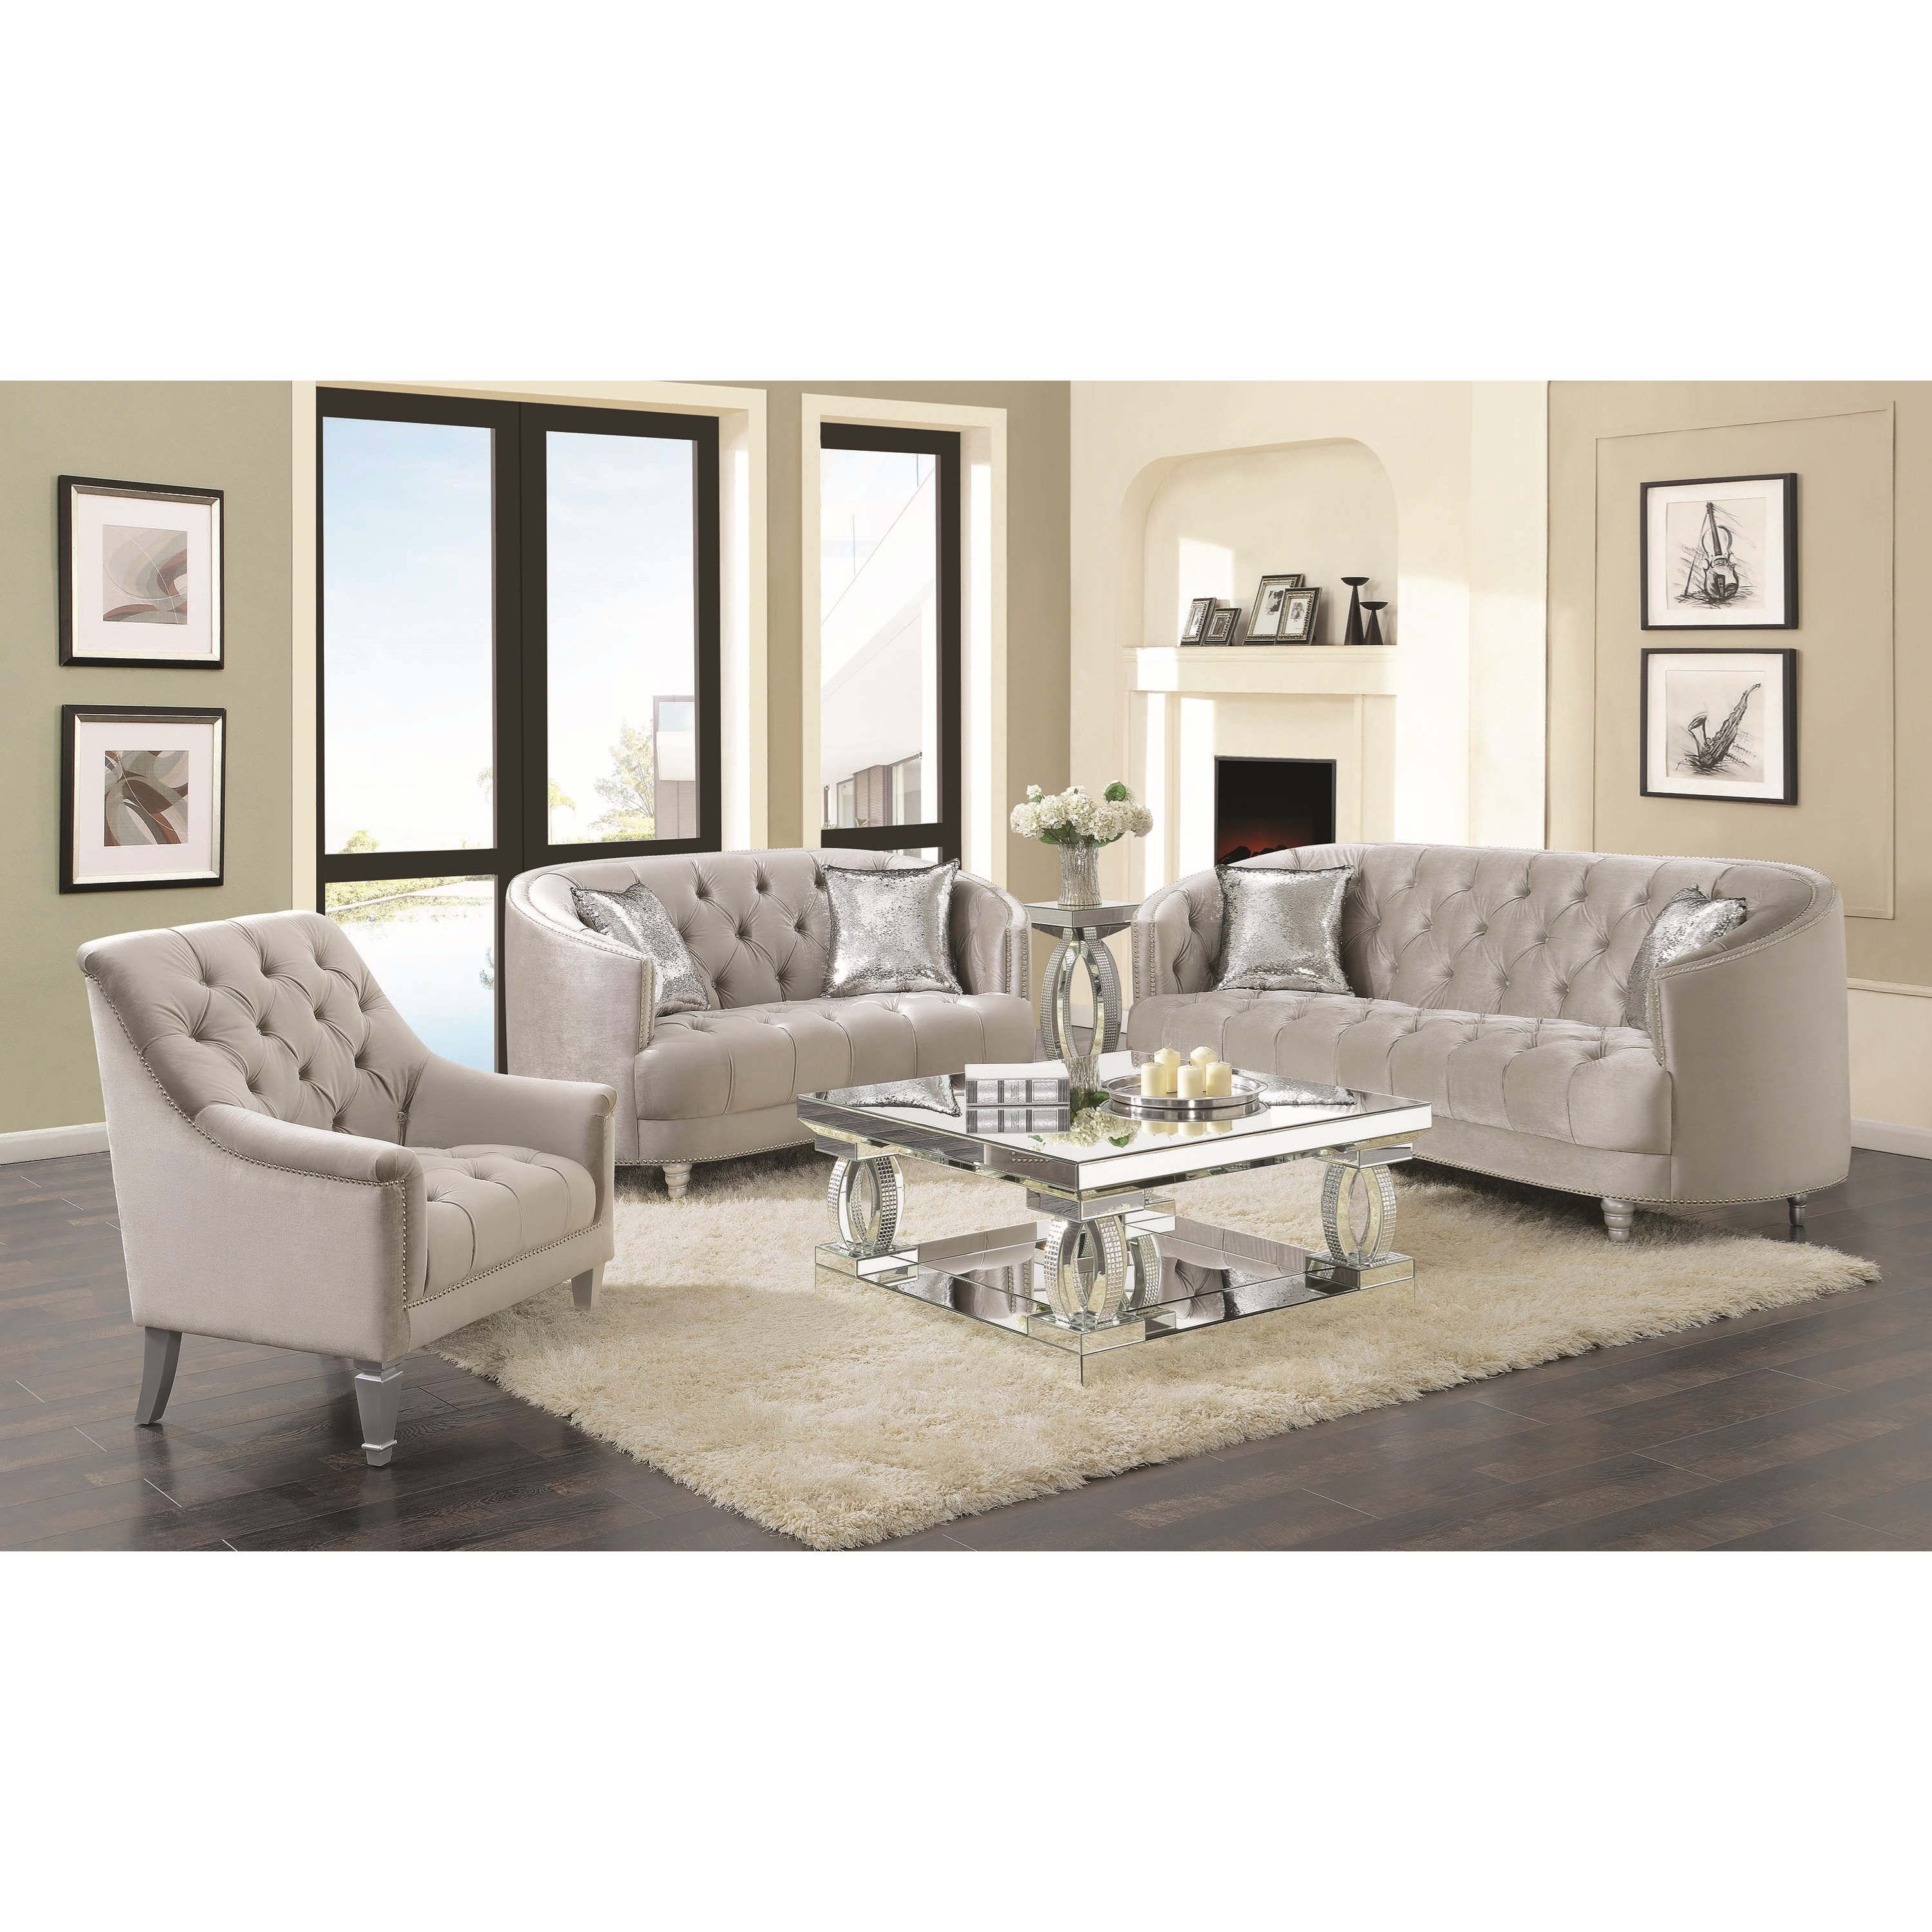 Avonlea Living Room Group by Coaster at Miller Home